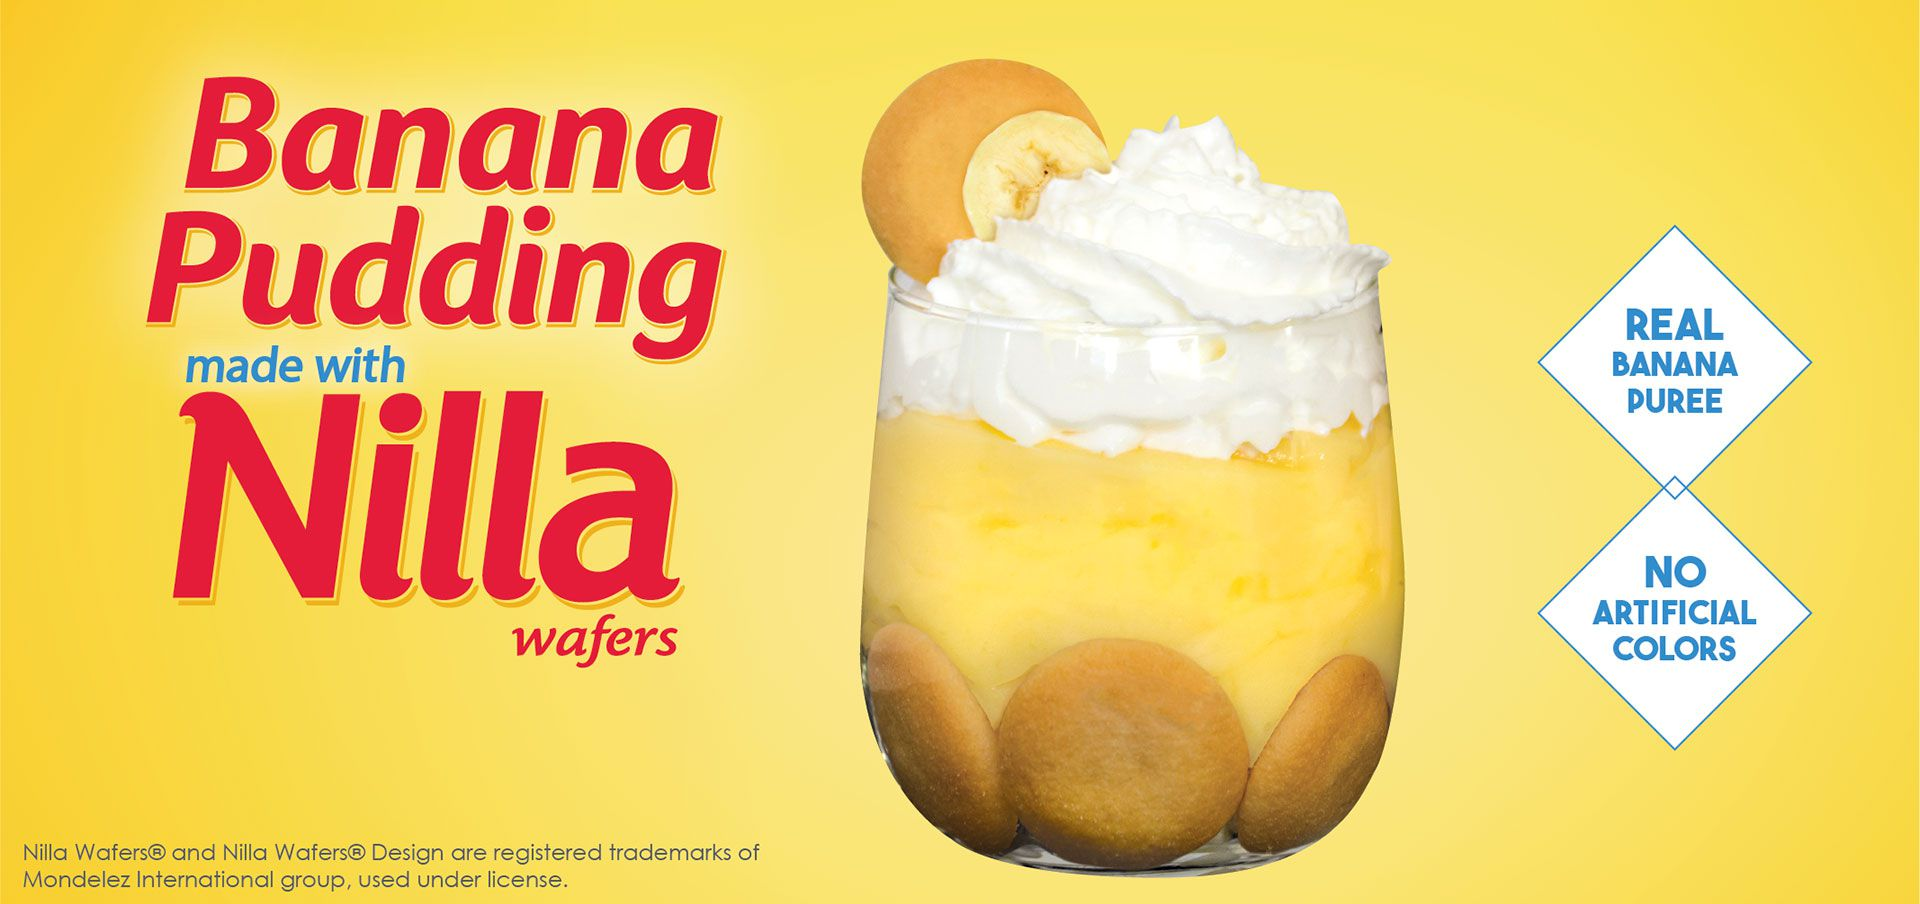 banana pudding made with nilla® wafers label image